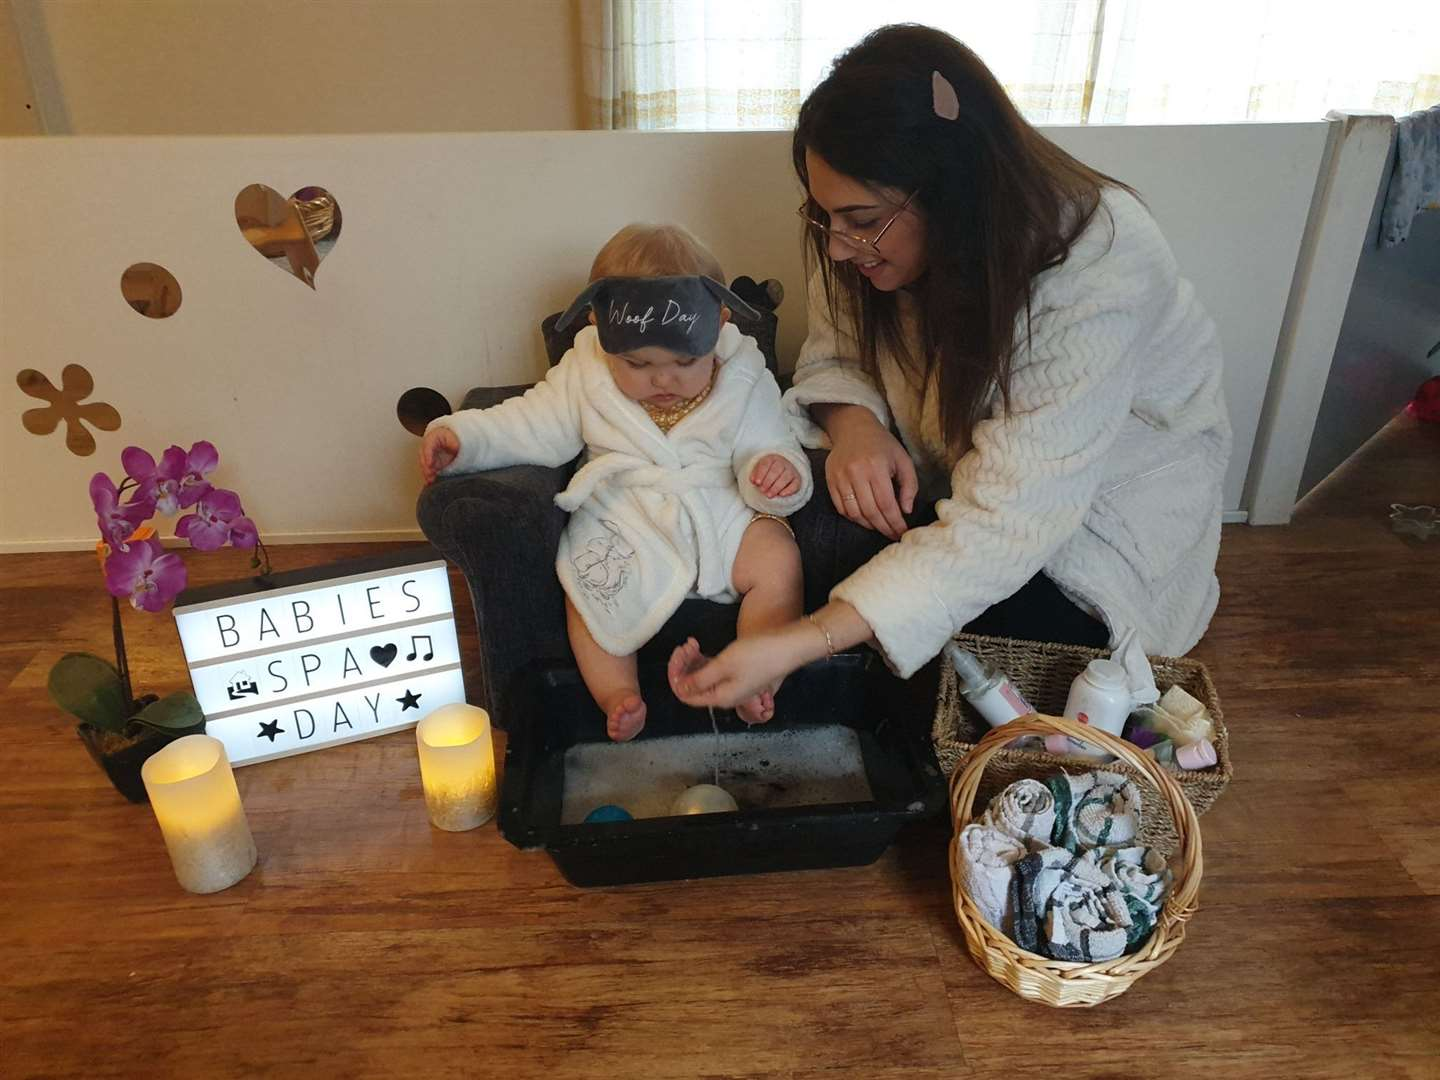 Babies spa day at My Nursery. (44277127)